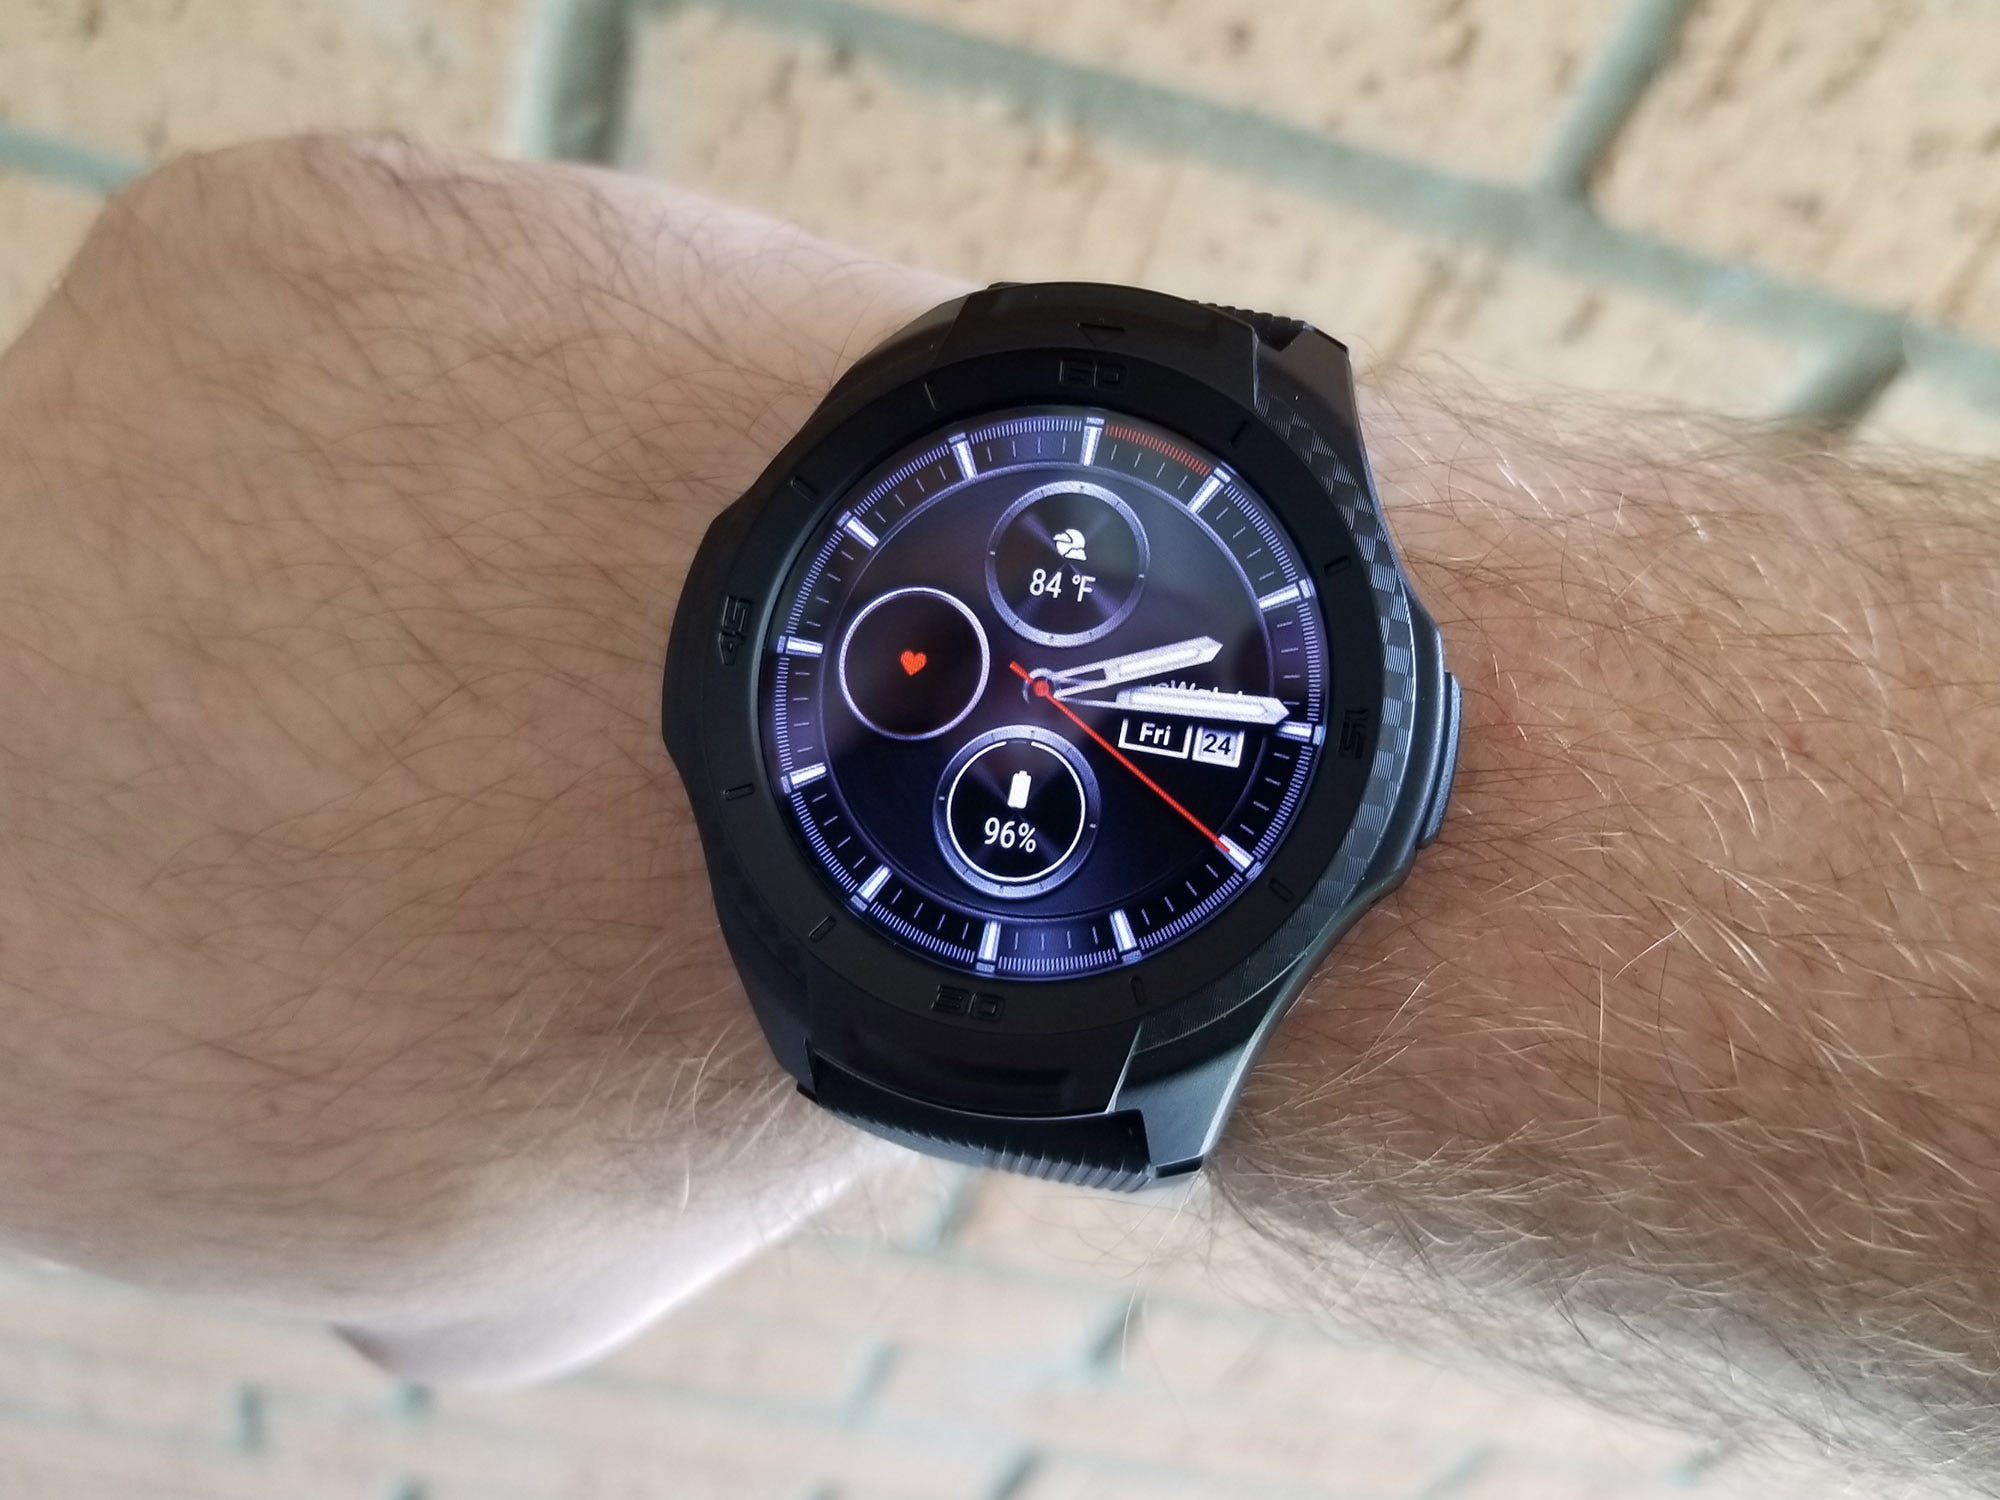 The TicWatch S2 wears large on my wrist, even though it's a pretty big one.